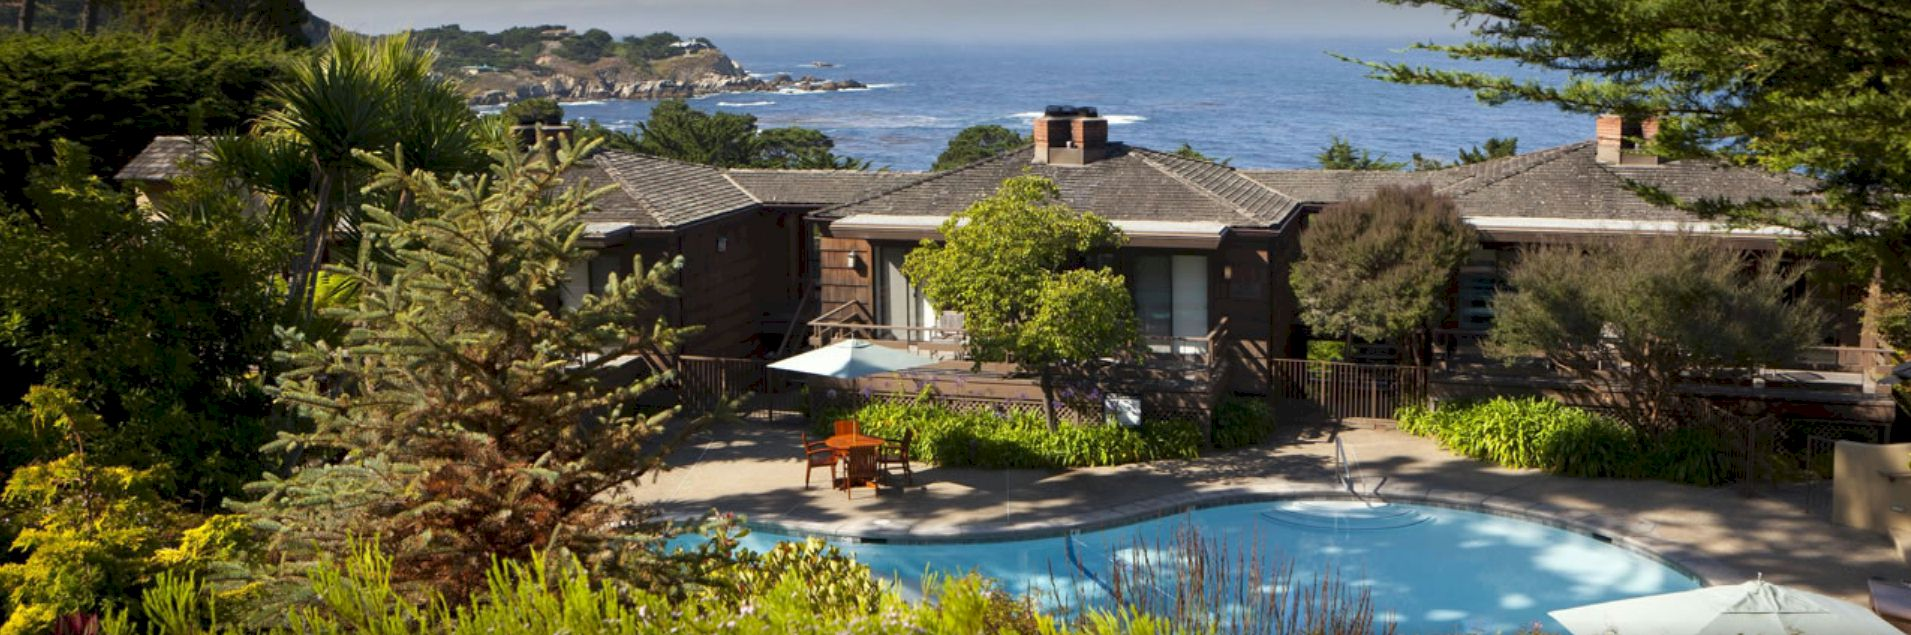 hyatt-carmel-highlands-inn